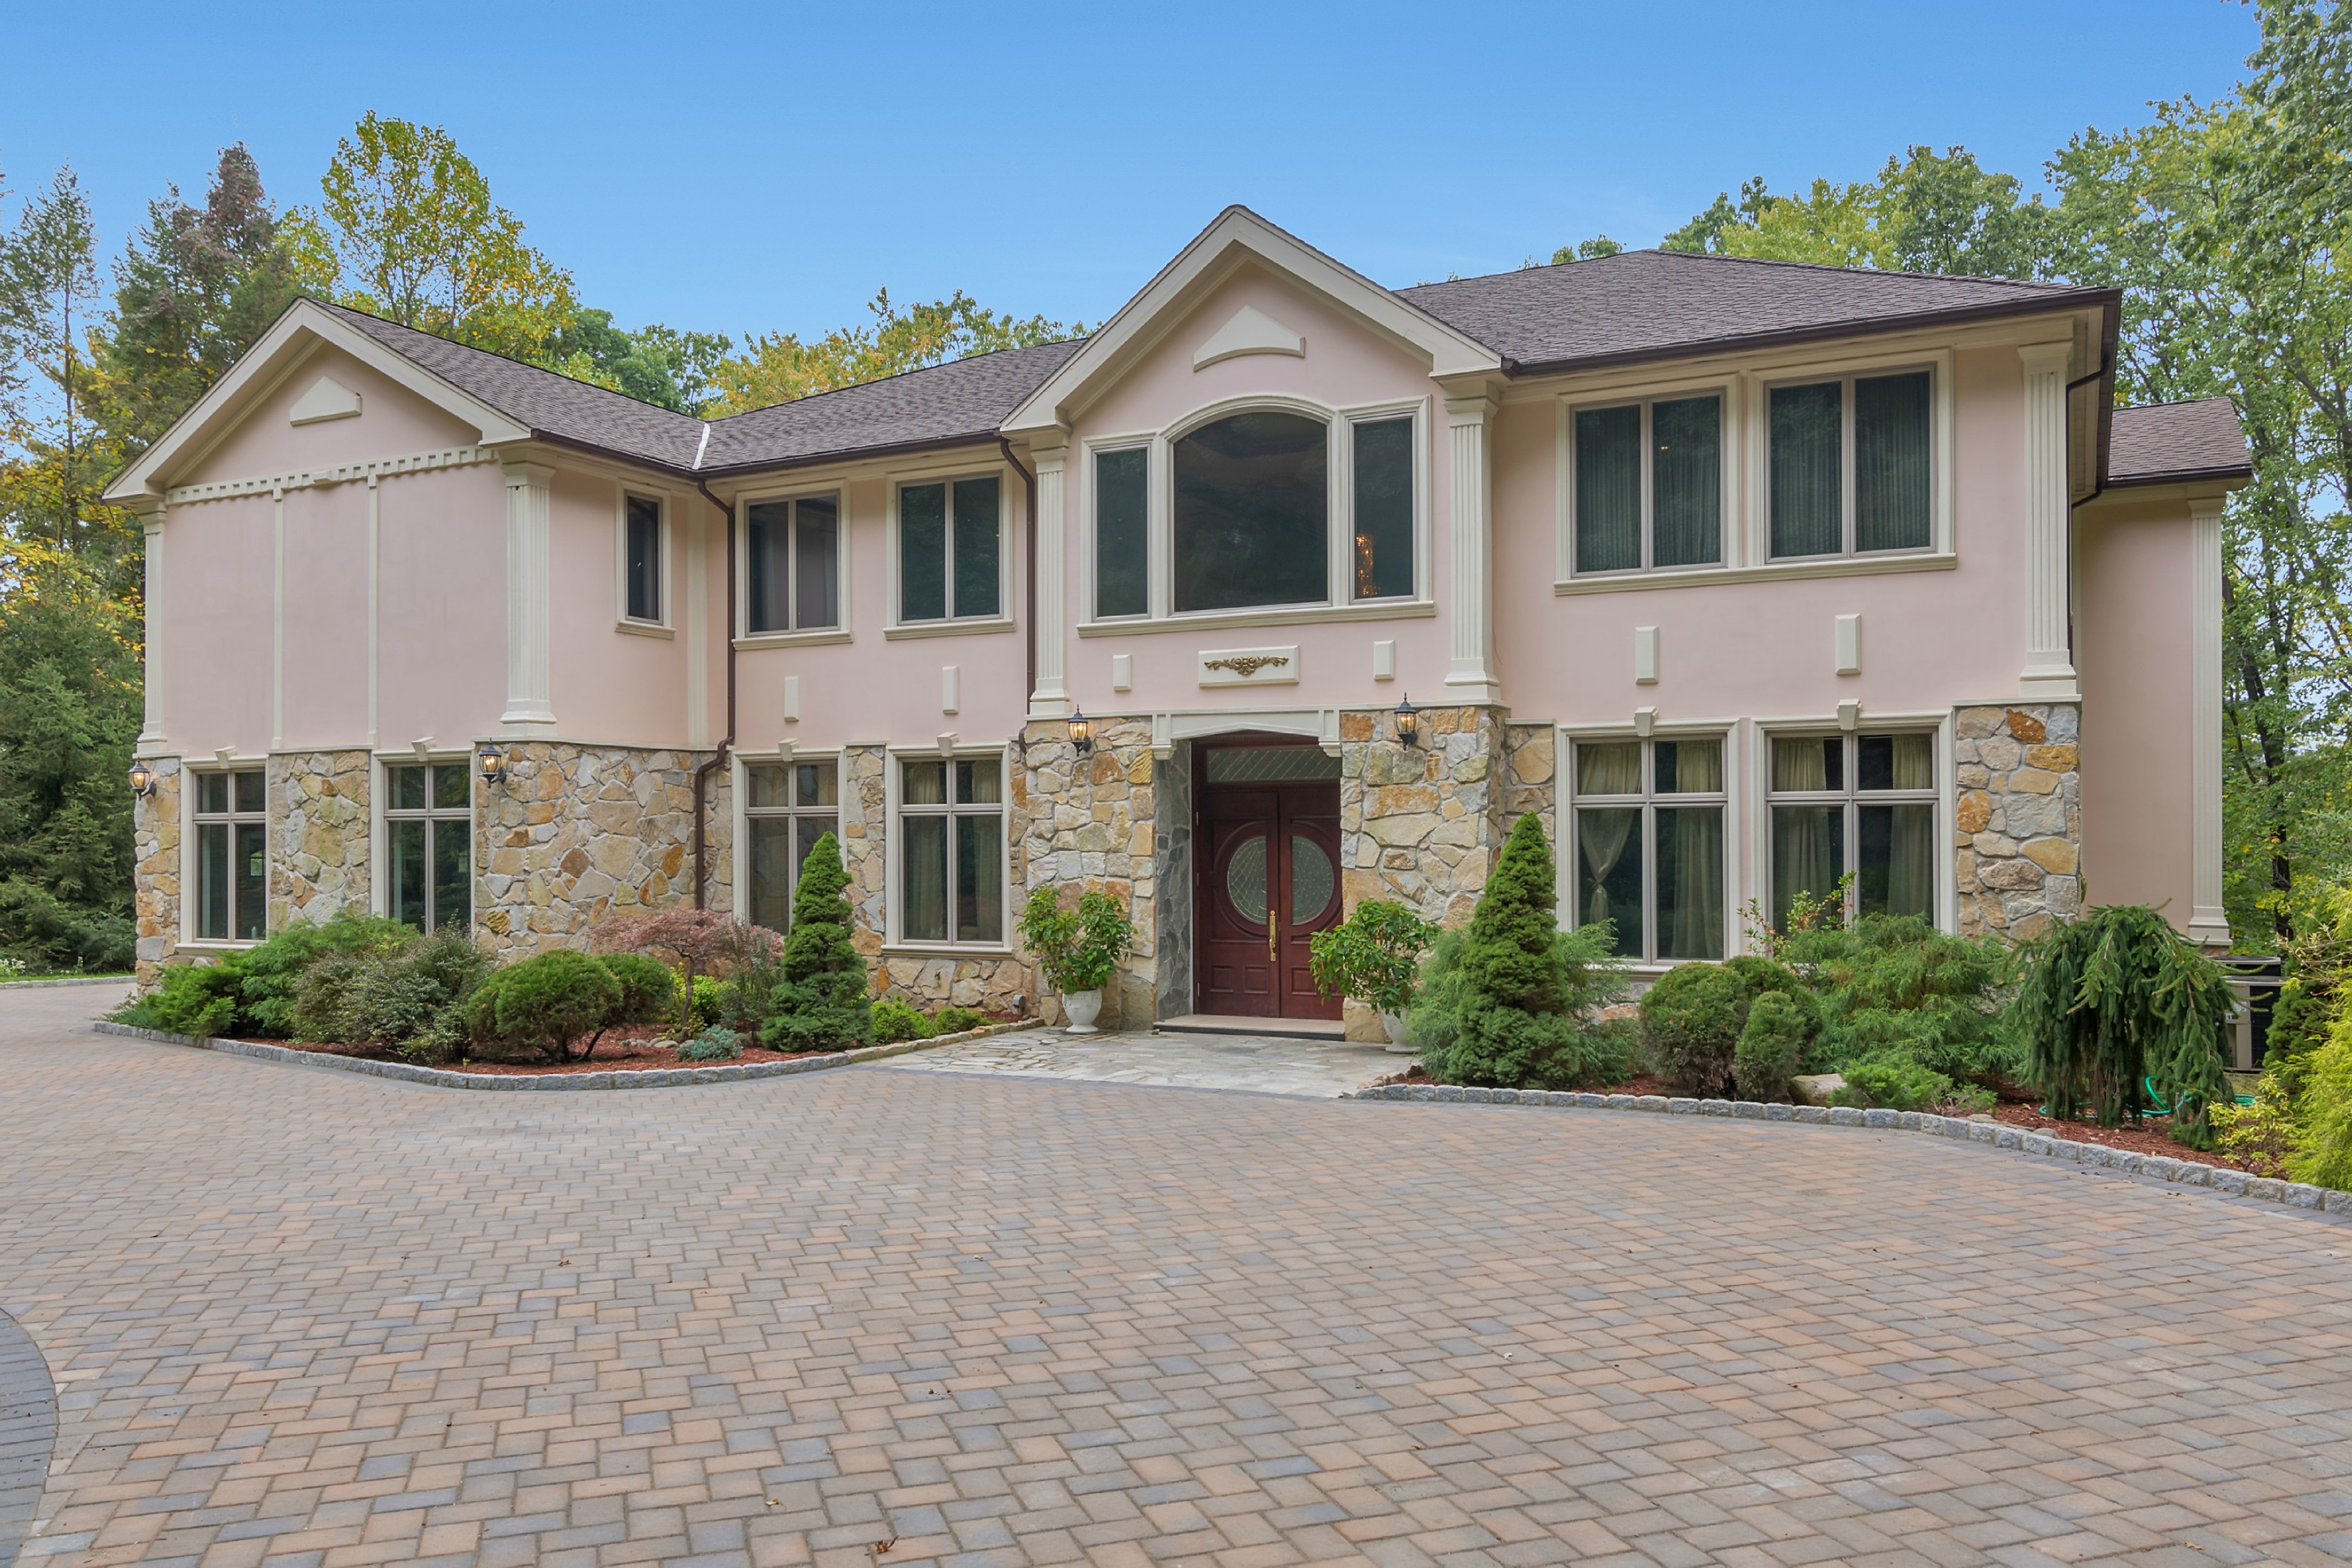 Single Family Home for Sale at True Masterpiece 14 Dogwood Drive Saddle River, 07458 United States